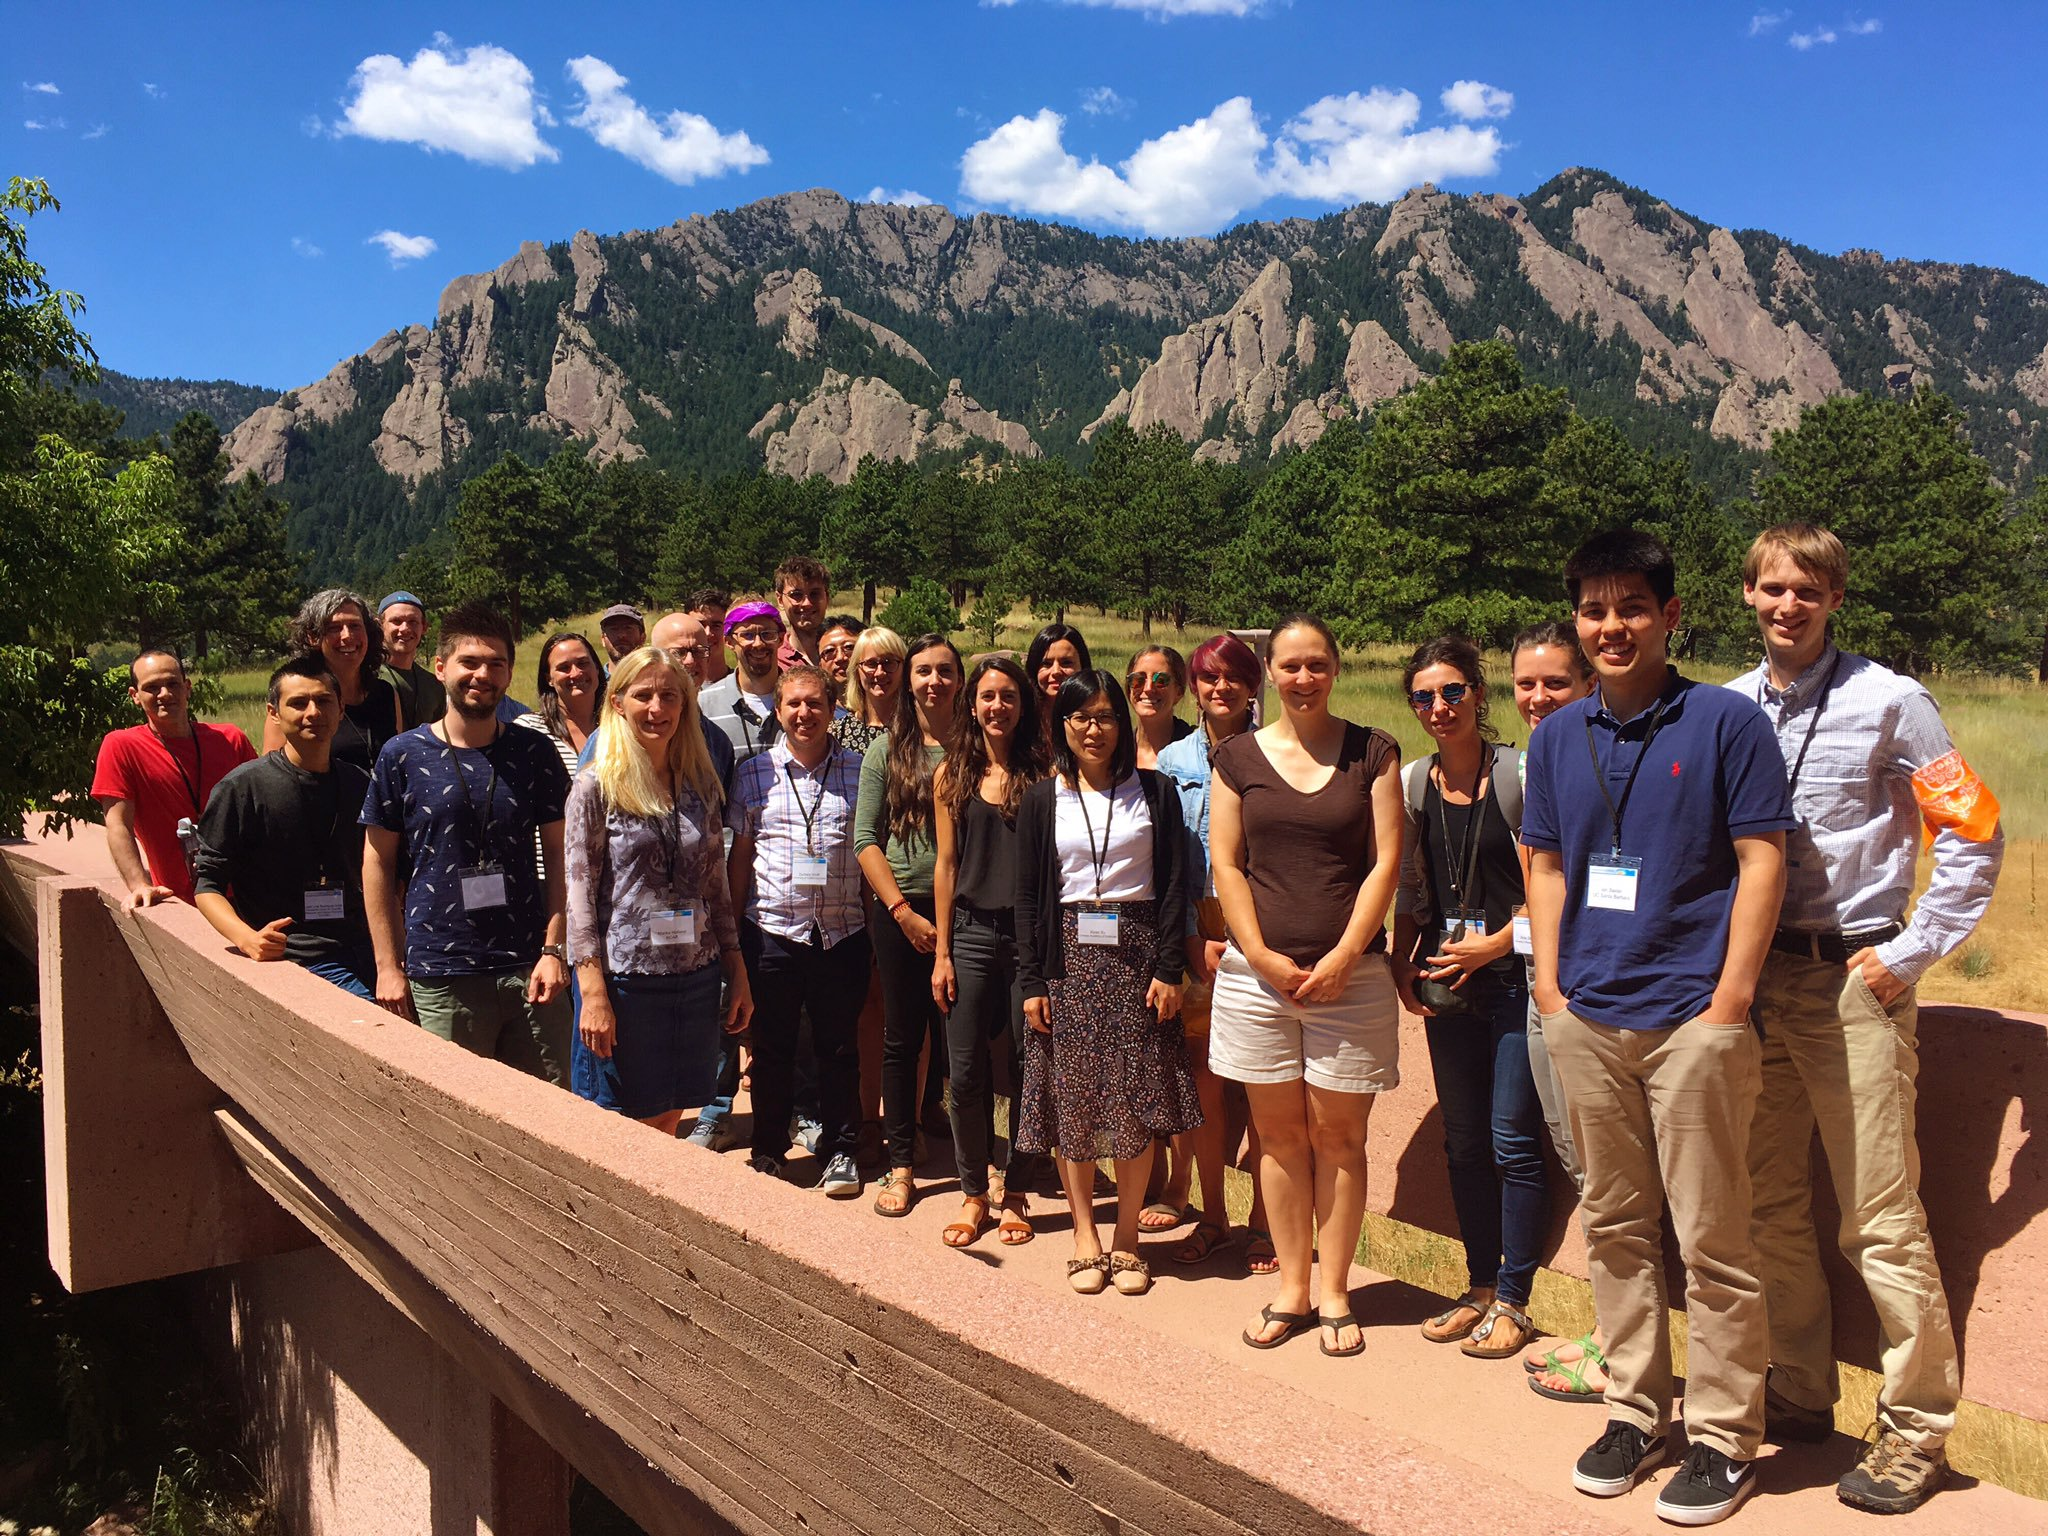 NCAR 2019 Polar Modeling Workshop participants and organizers. Photo:  David Bailey / Todd Amodeo